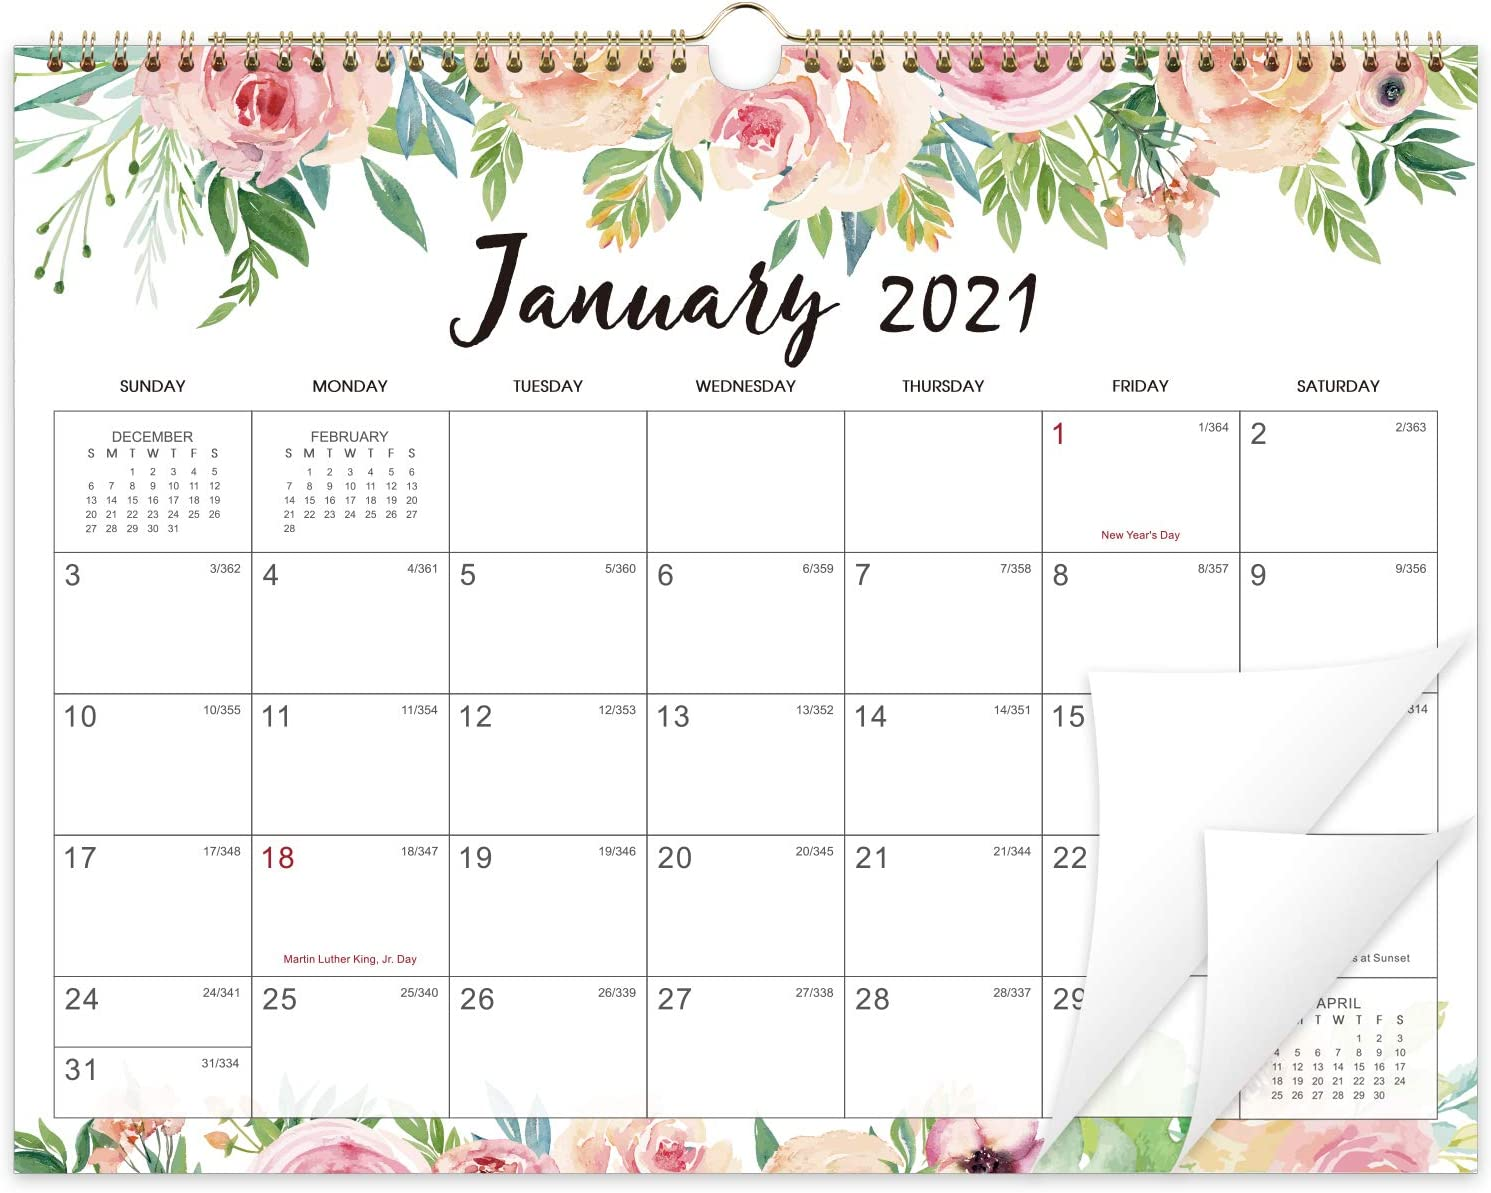 Pictures of Twin Falls School District Calendar 2021-2022